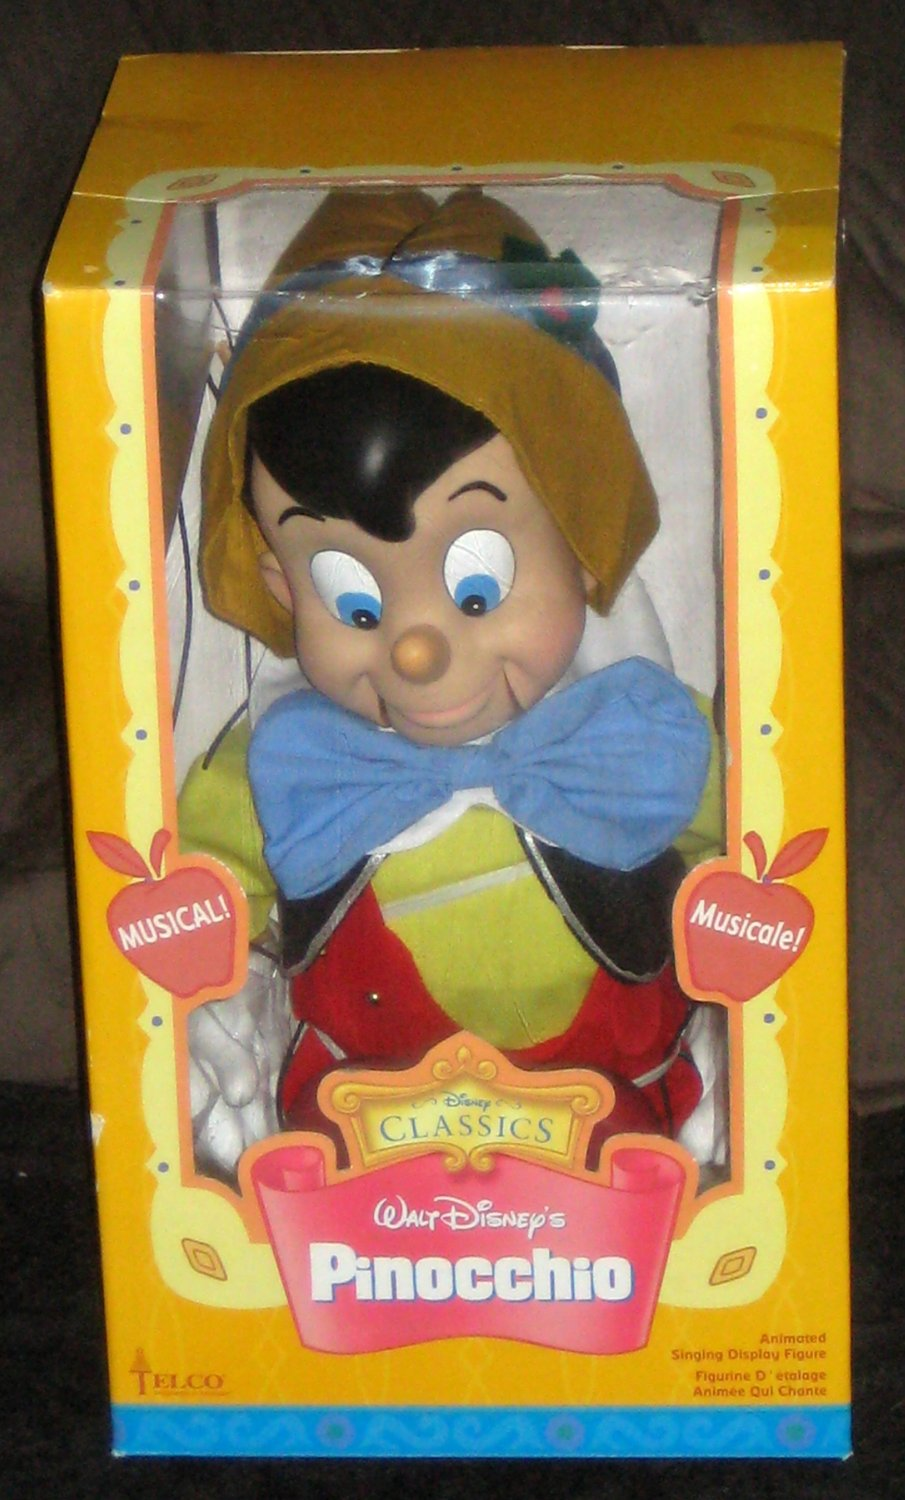 SOLD Pinocchio Animated Singing Christmas Puppet Marionette Figure Telco NIB Disney Battery Operated